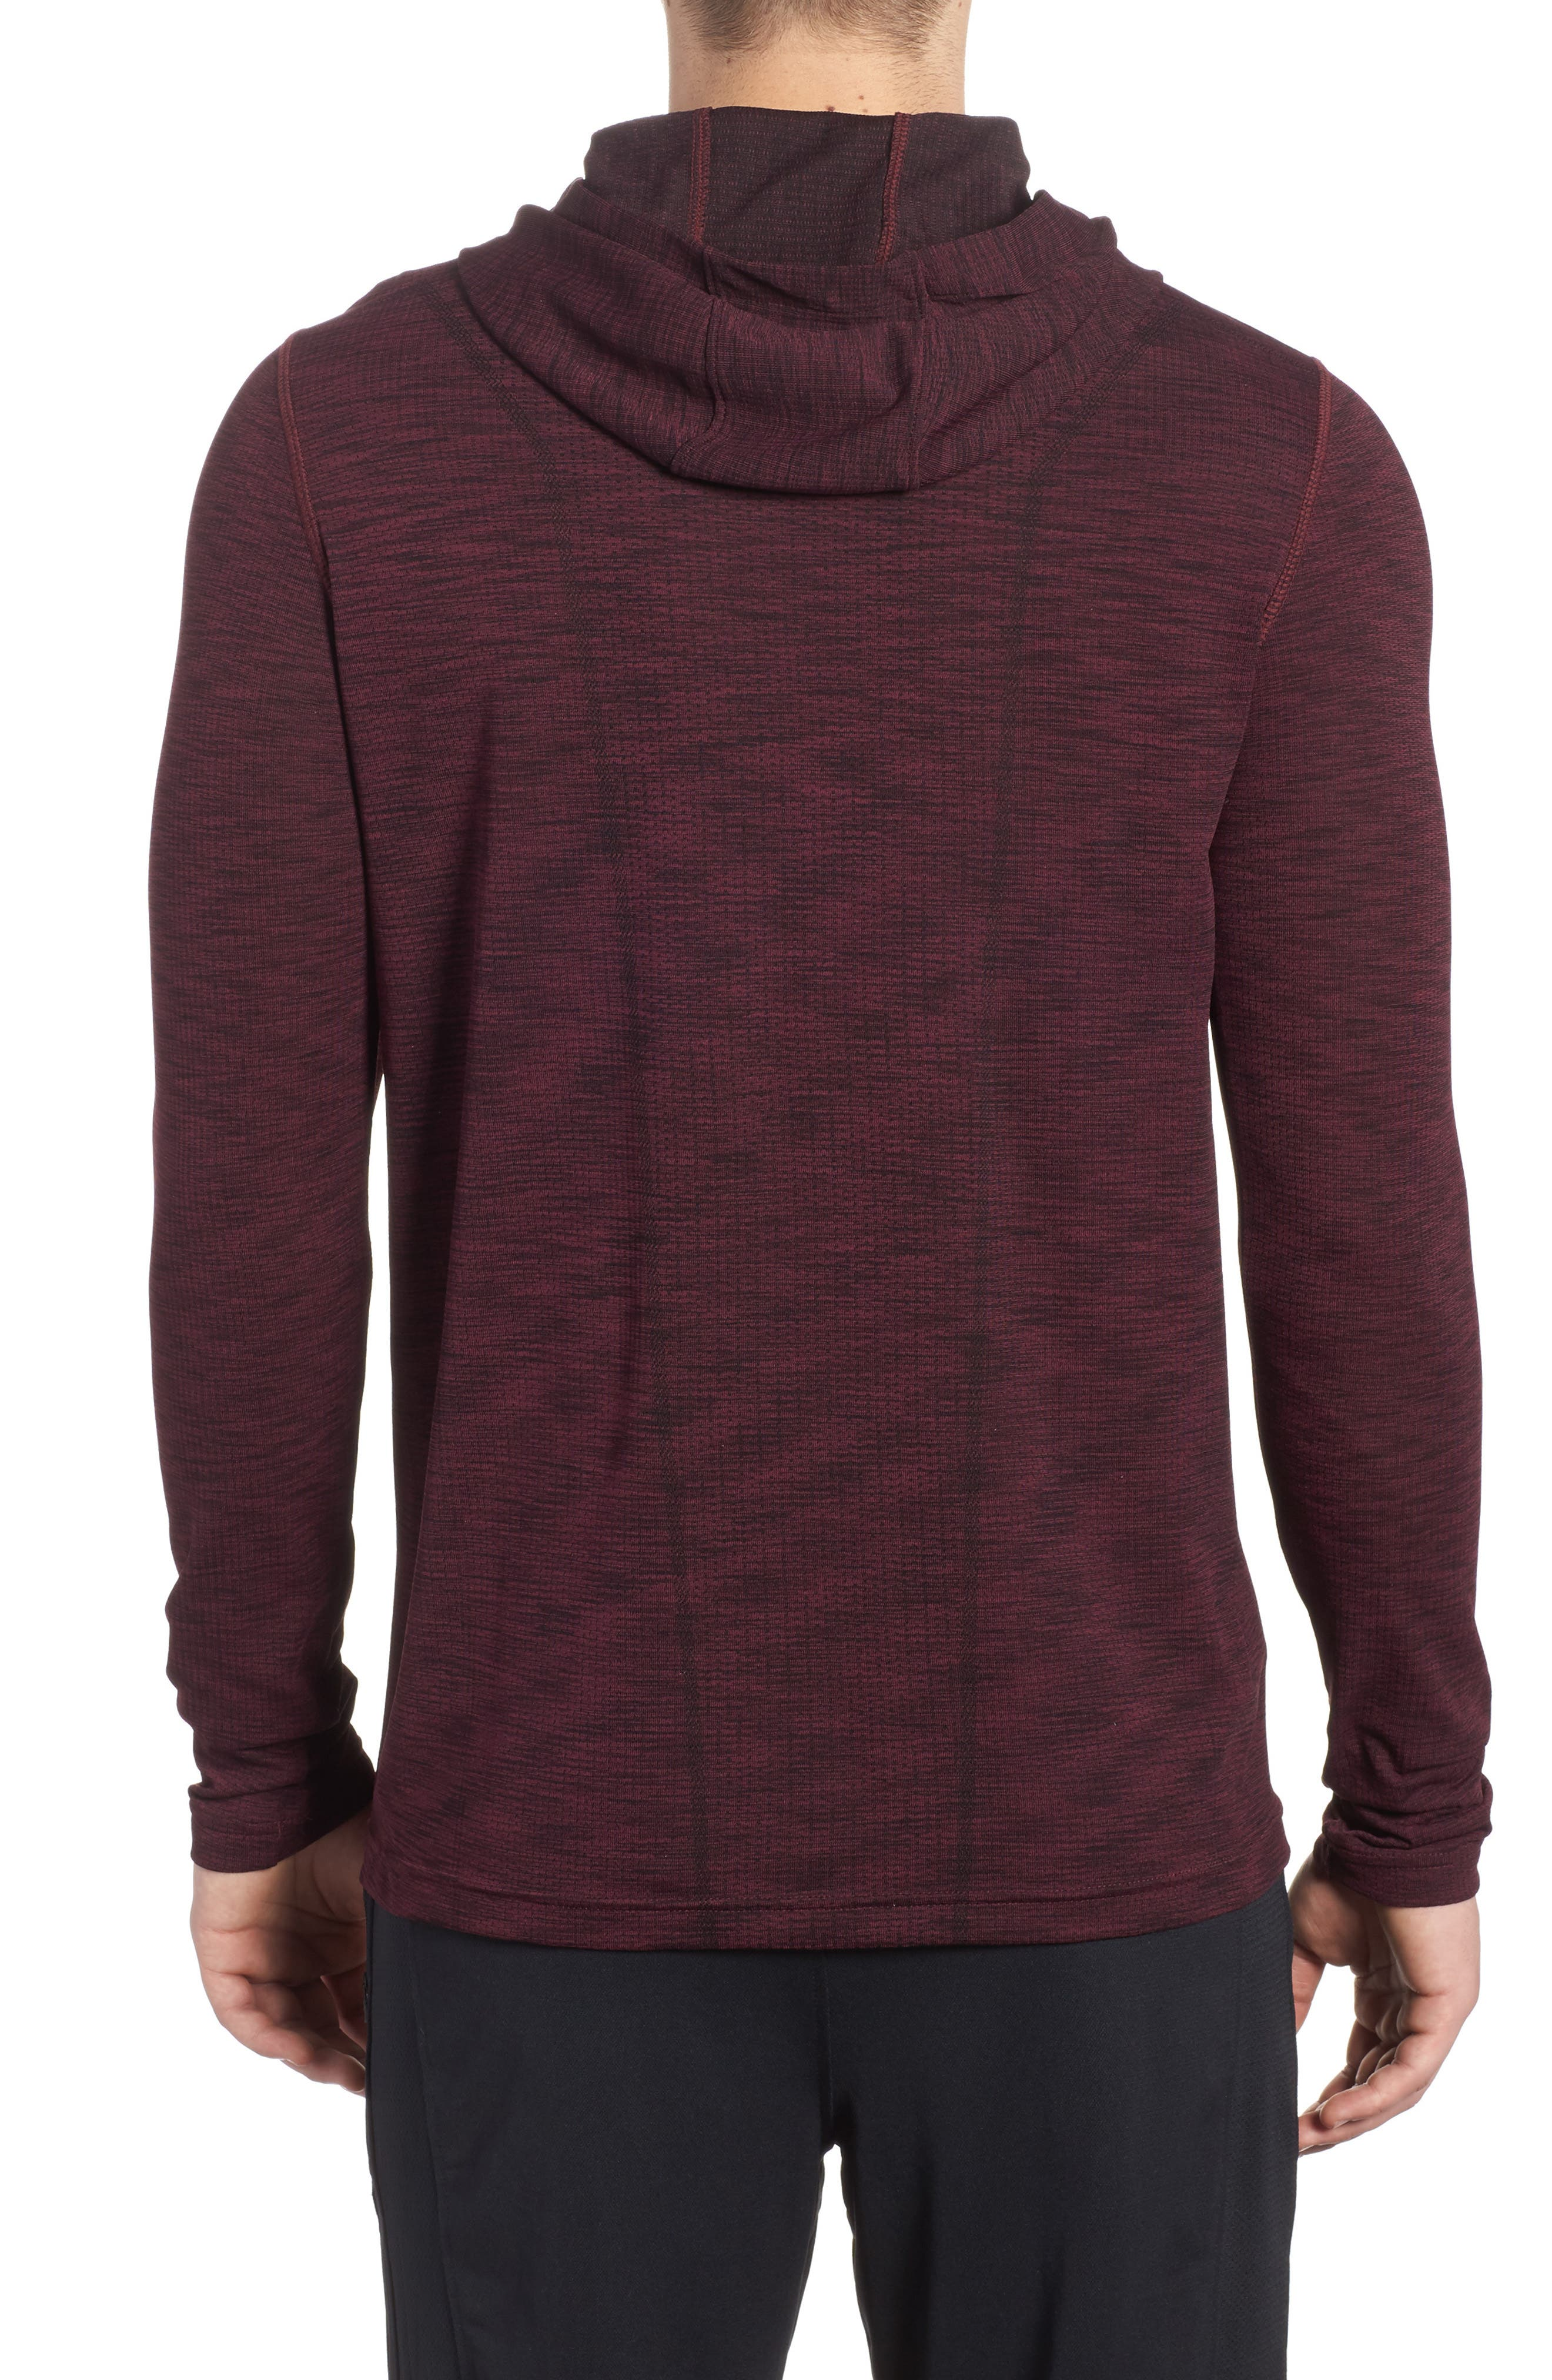 Threadbone Fitted Seamless Hoodie,                             Alternate thumbnail 2, color,                             Raisin Red / Stealth Grey